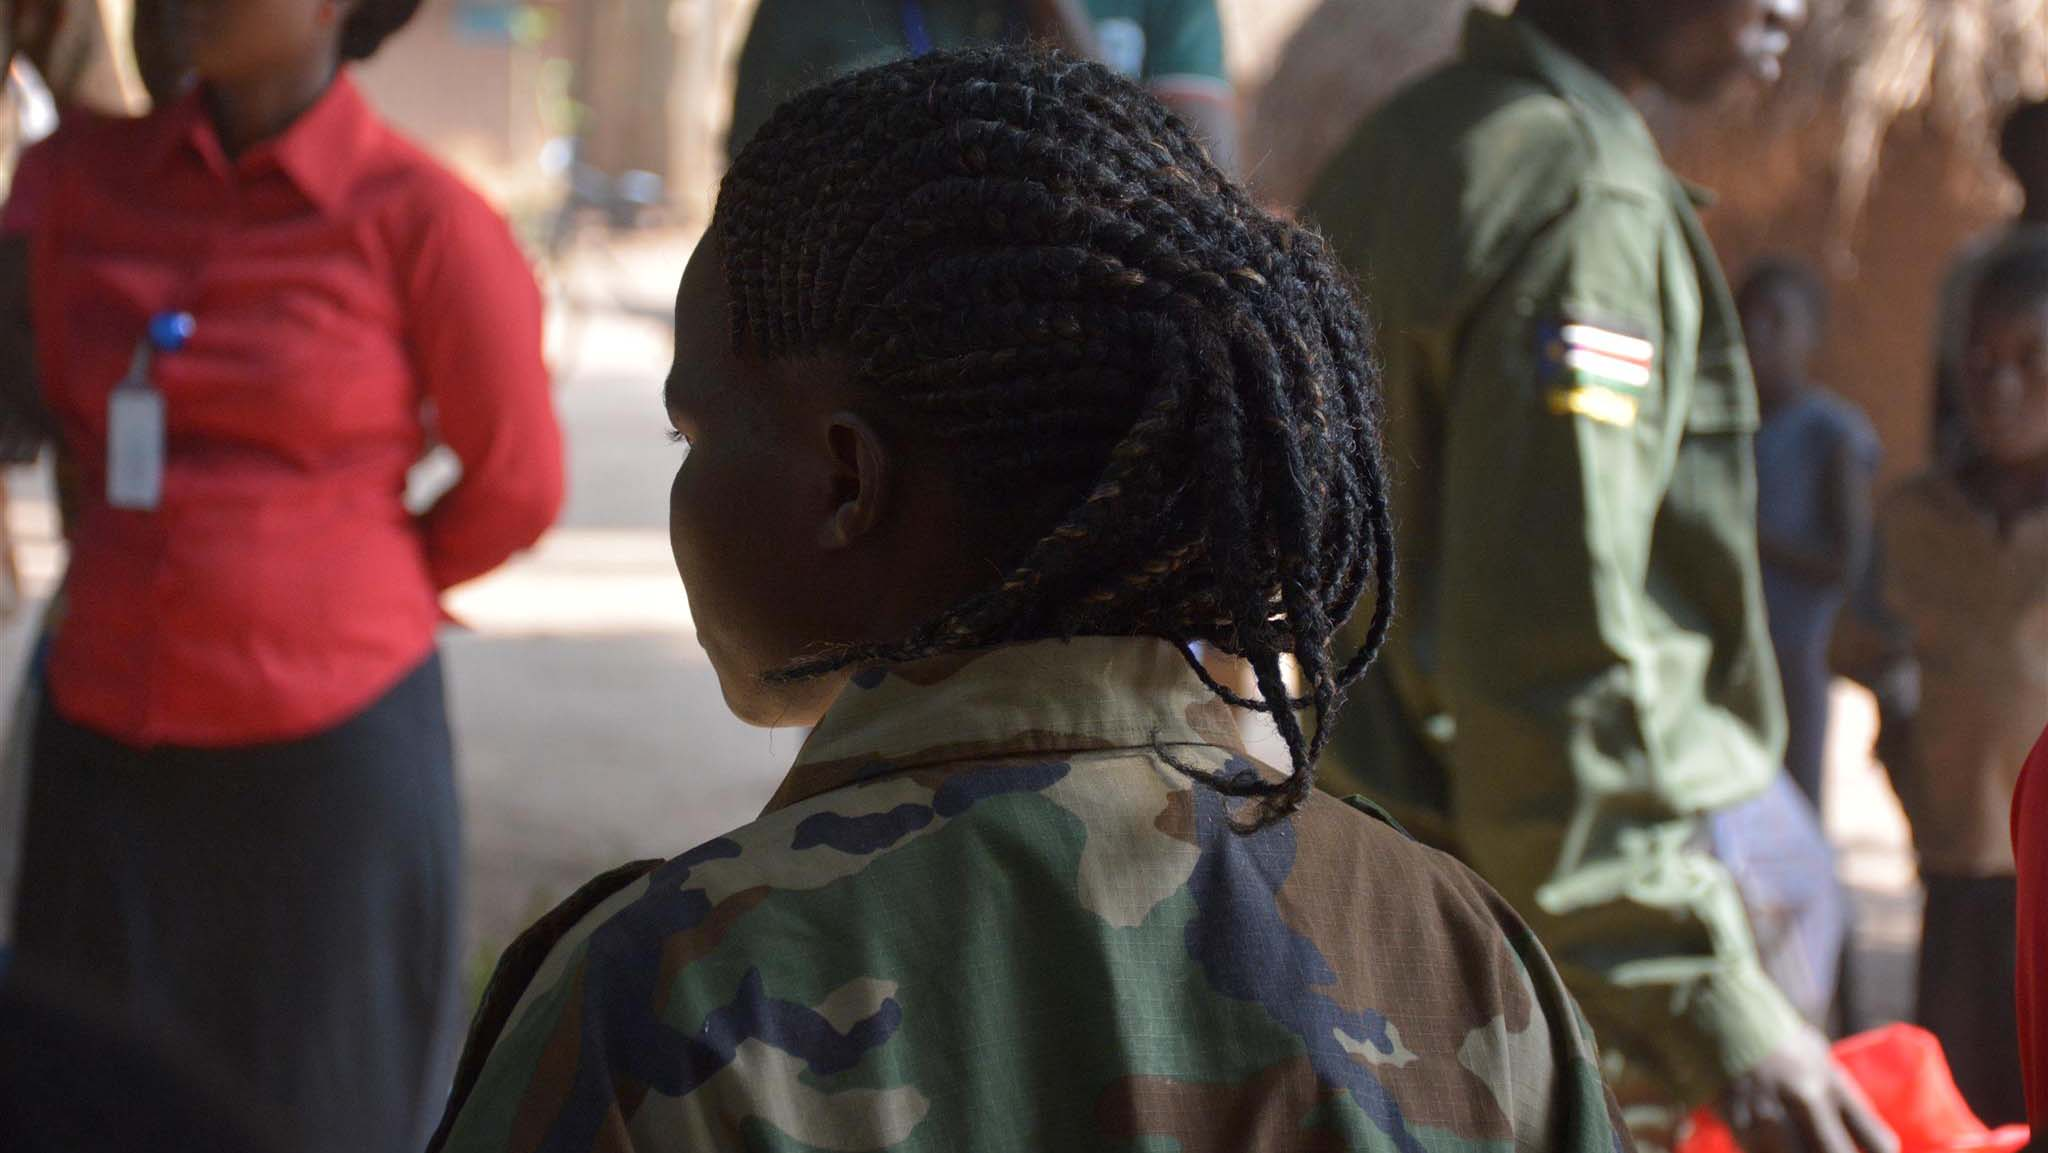 A former child soldier pictured in the DRC.